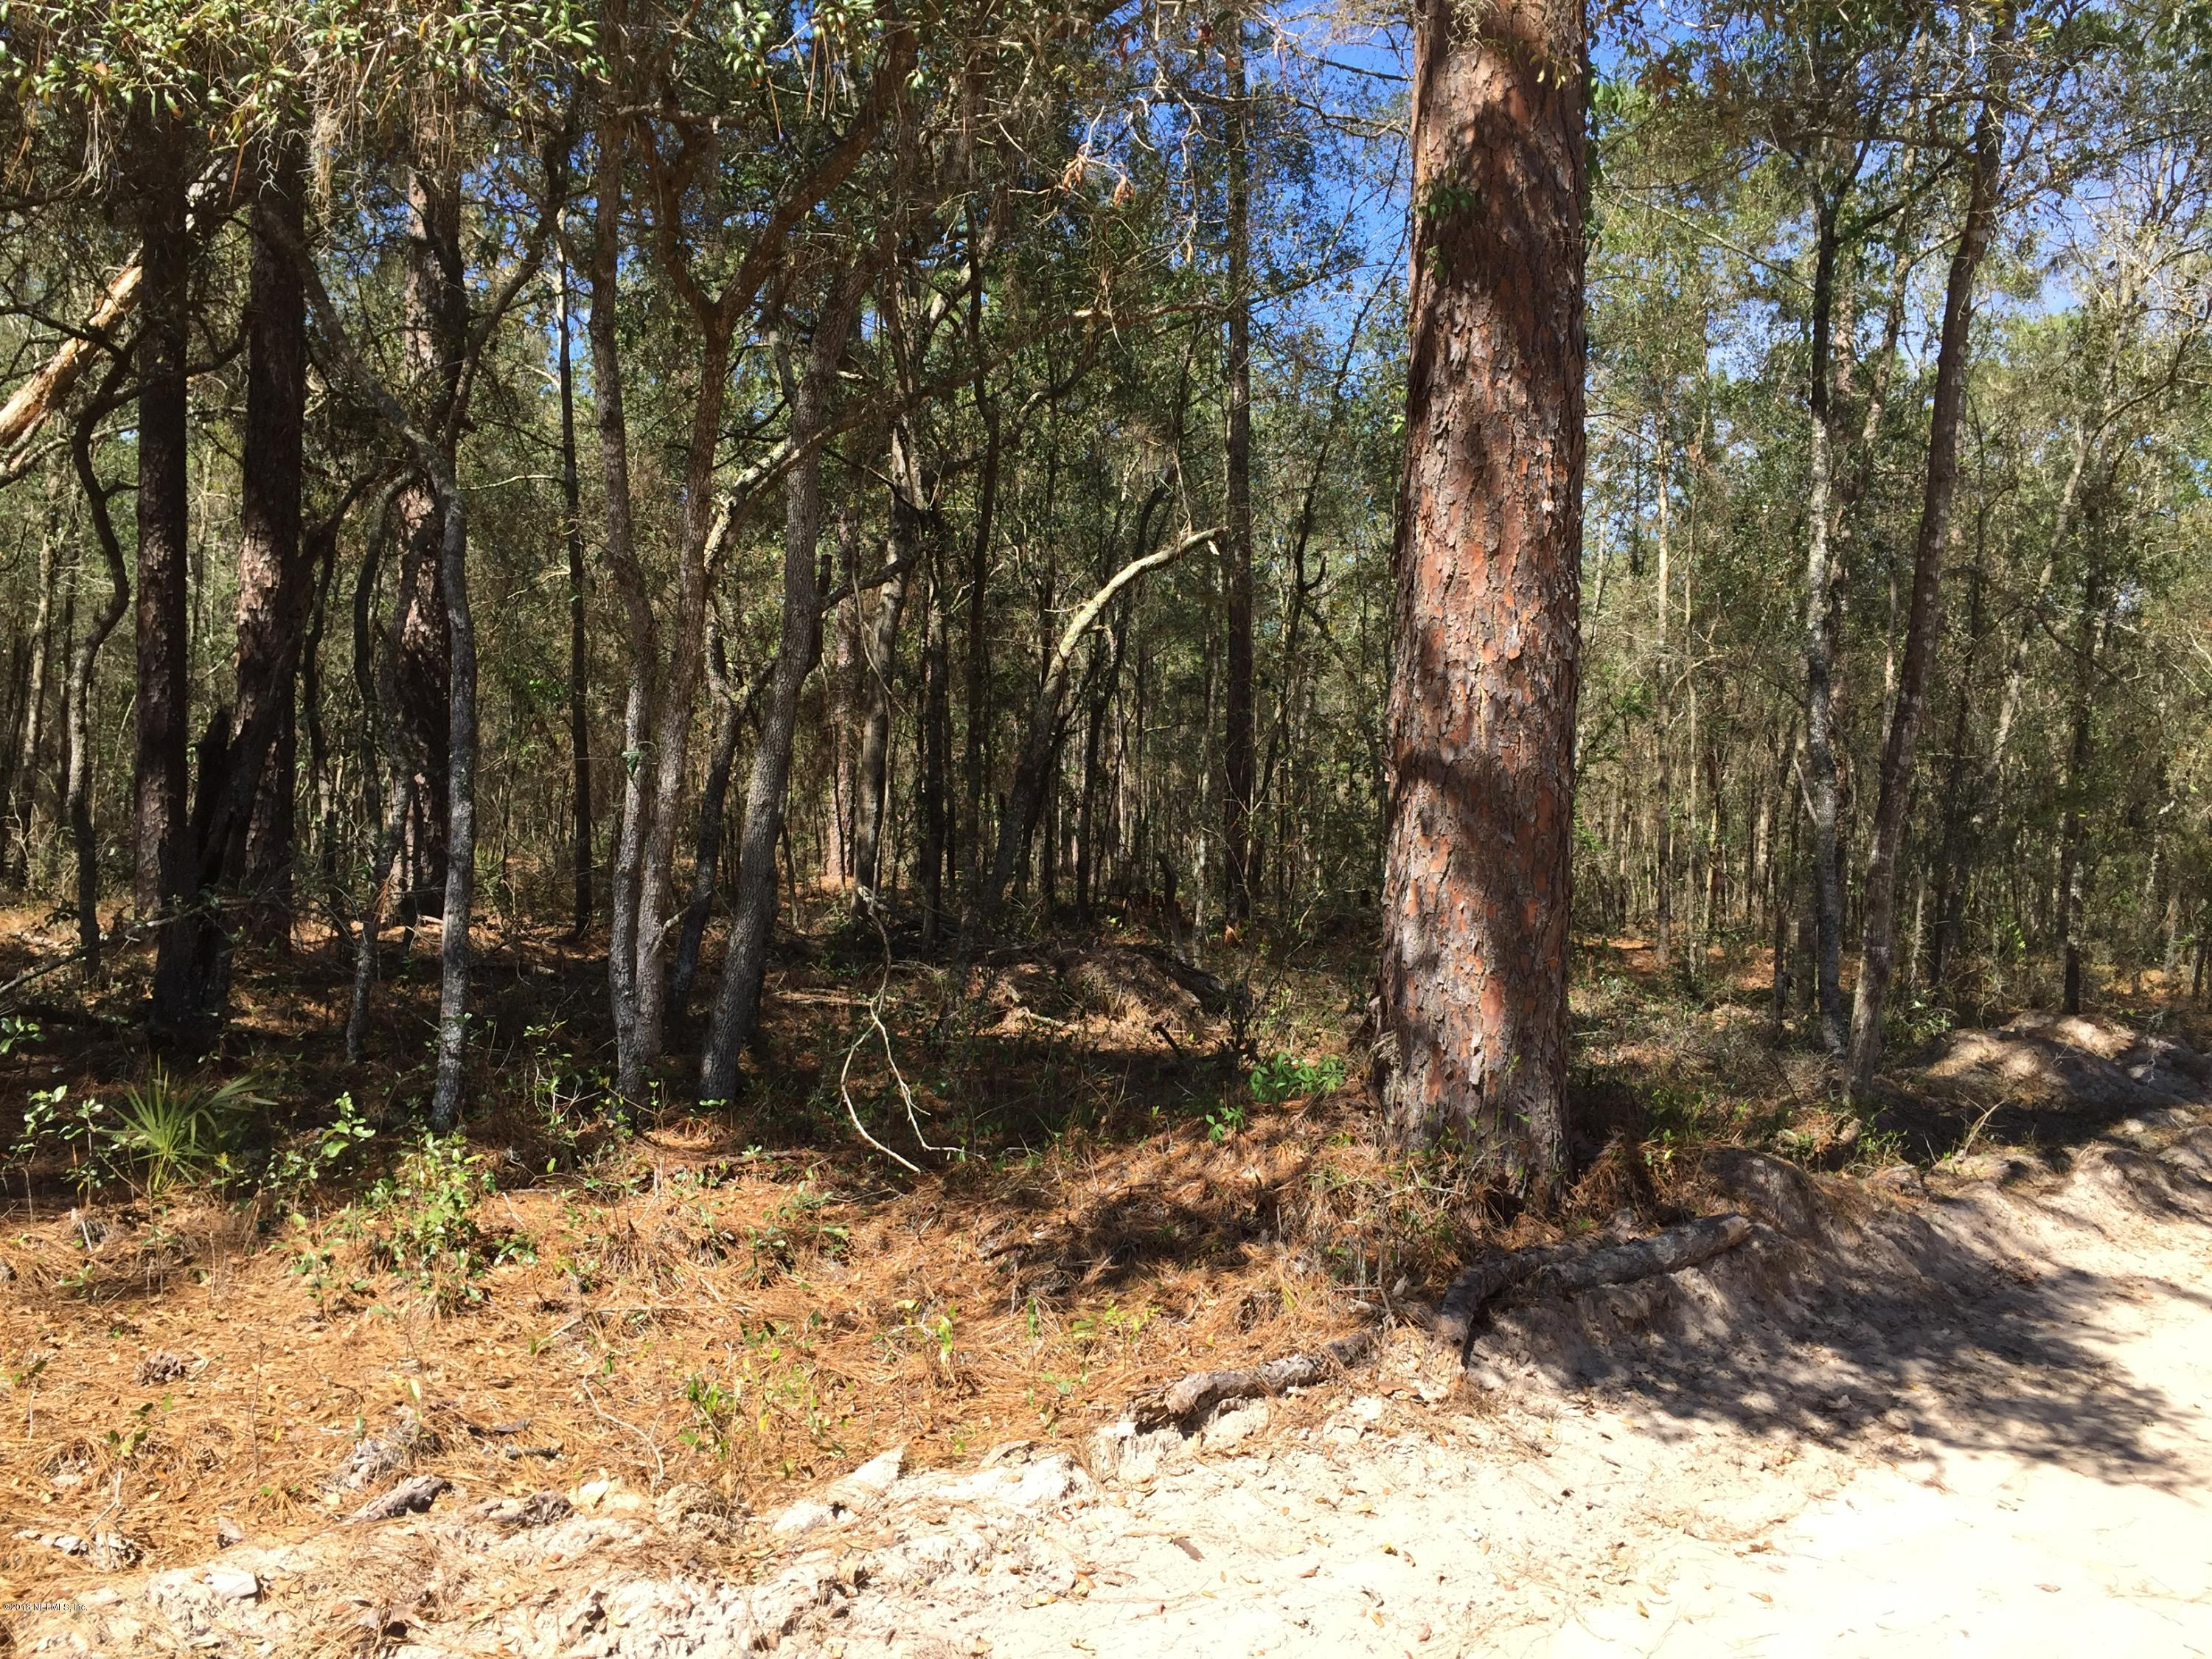 0 HART LAKE, INTERLACHEN, FLORIDA 32148, ,Vacant land,For sale,HART LAKE,923467